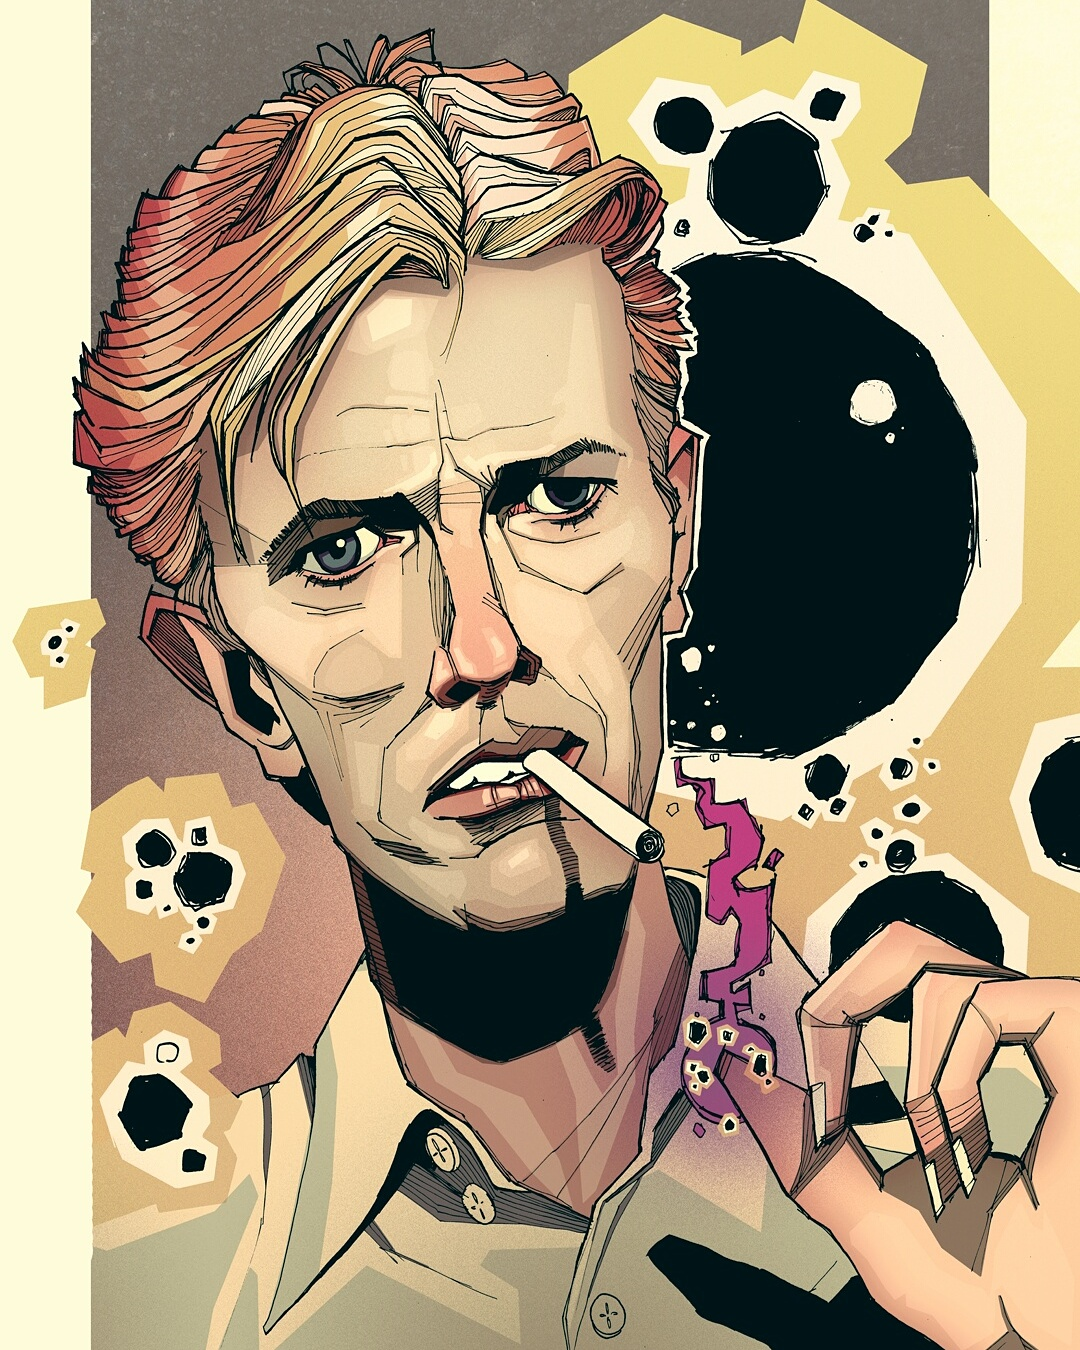 David Bowie Smoking artwork